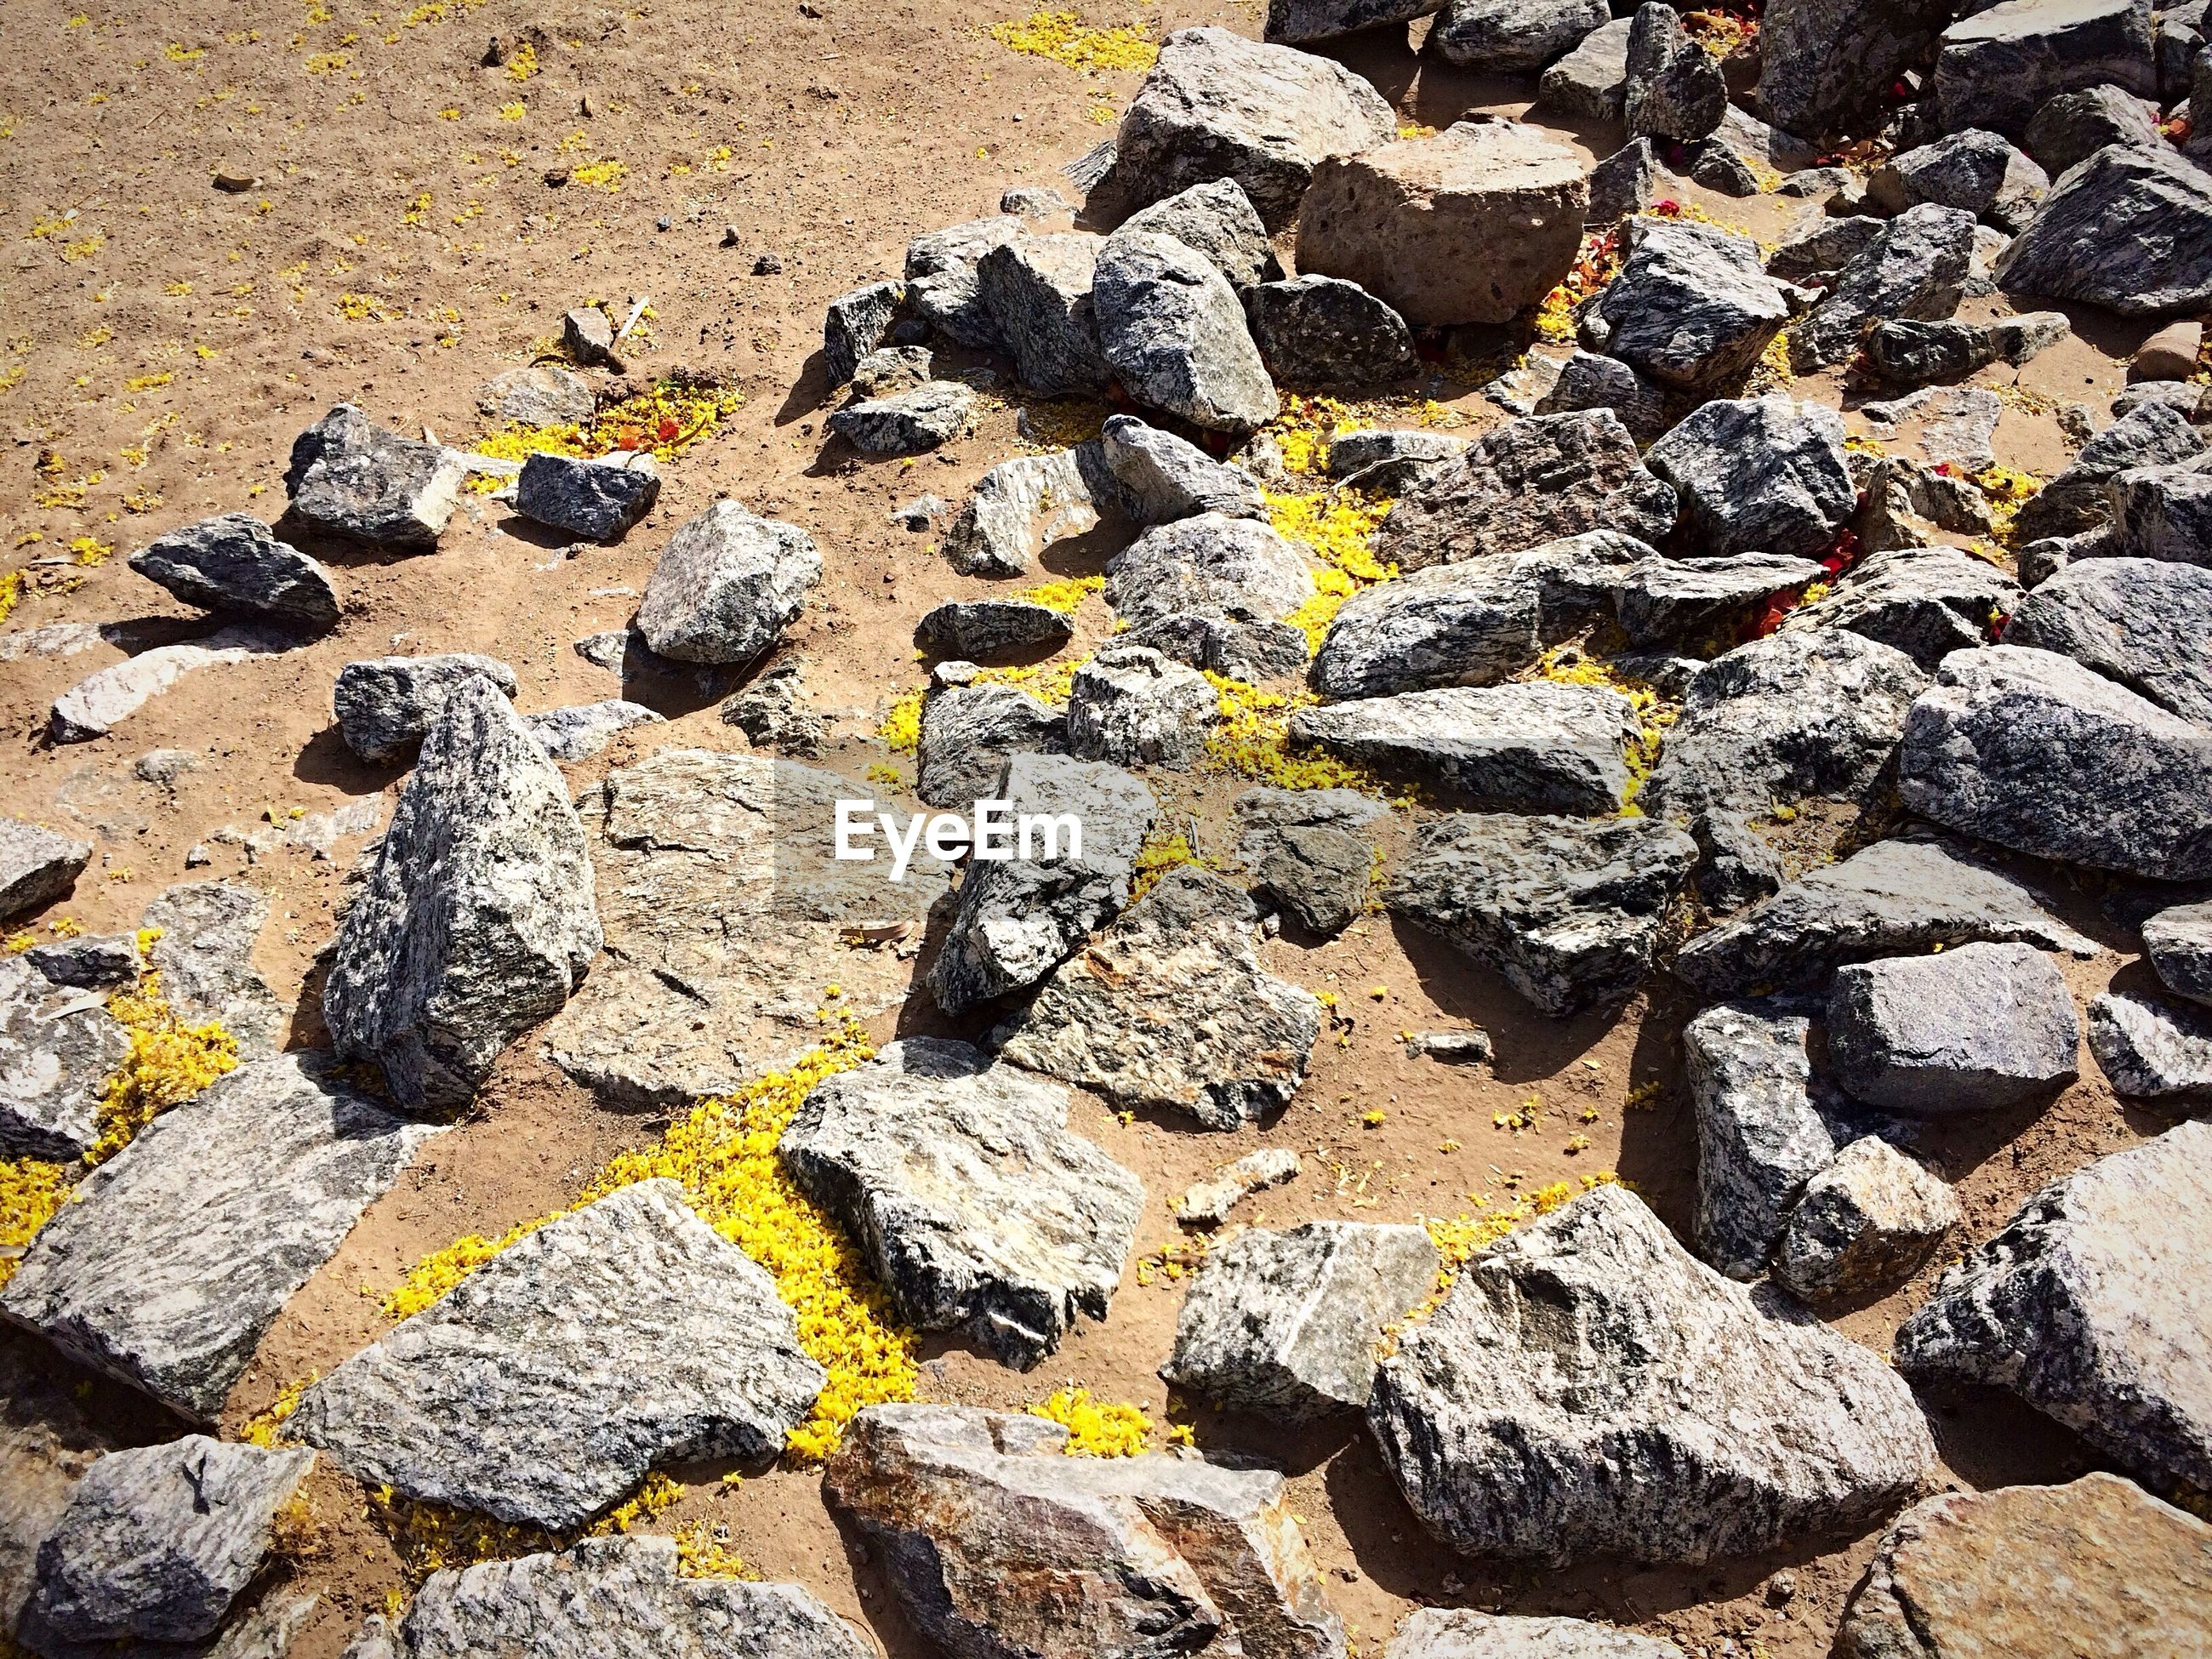 solid, rock, day, no people, nature, rock - object, textured, backgrounds, land, full frame, sunlight, high angle view, outdoors, rough, close-up, stone - object, field, yellow, pattern, black color, lichen